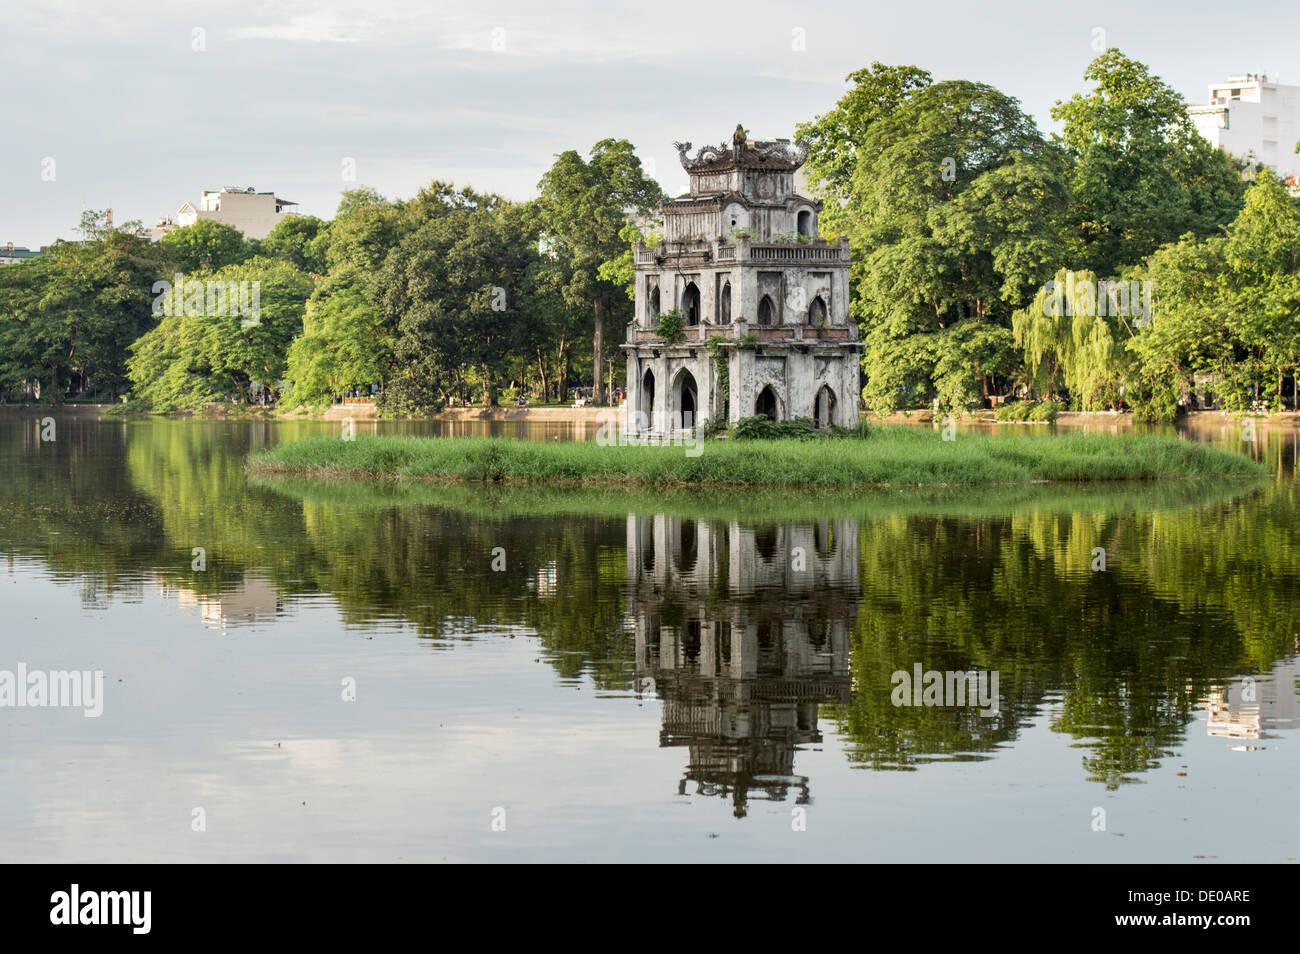 The view of Ngoc Son temple in Hoan Kiem lake, Hanoi, Vietnam - Stock Image